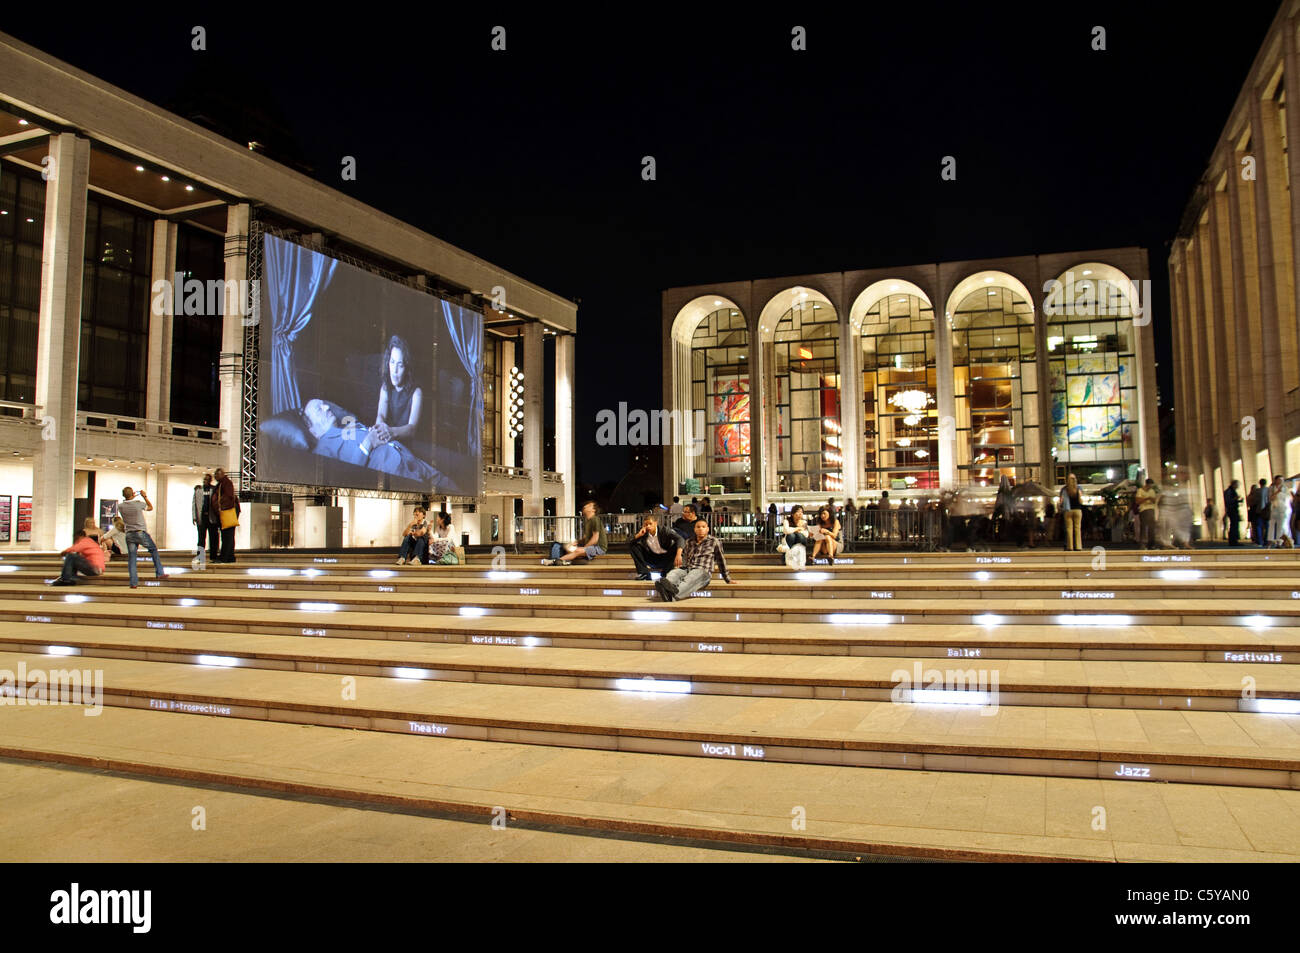 The renovated Lincoln Center Performing Arts center, Broadway, New York City - Stock Image